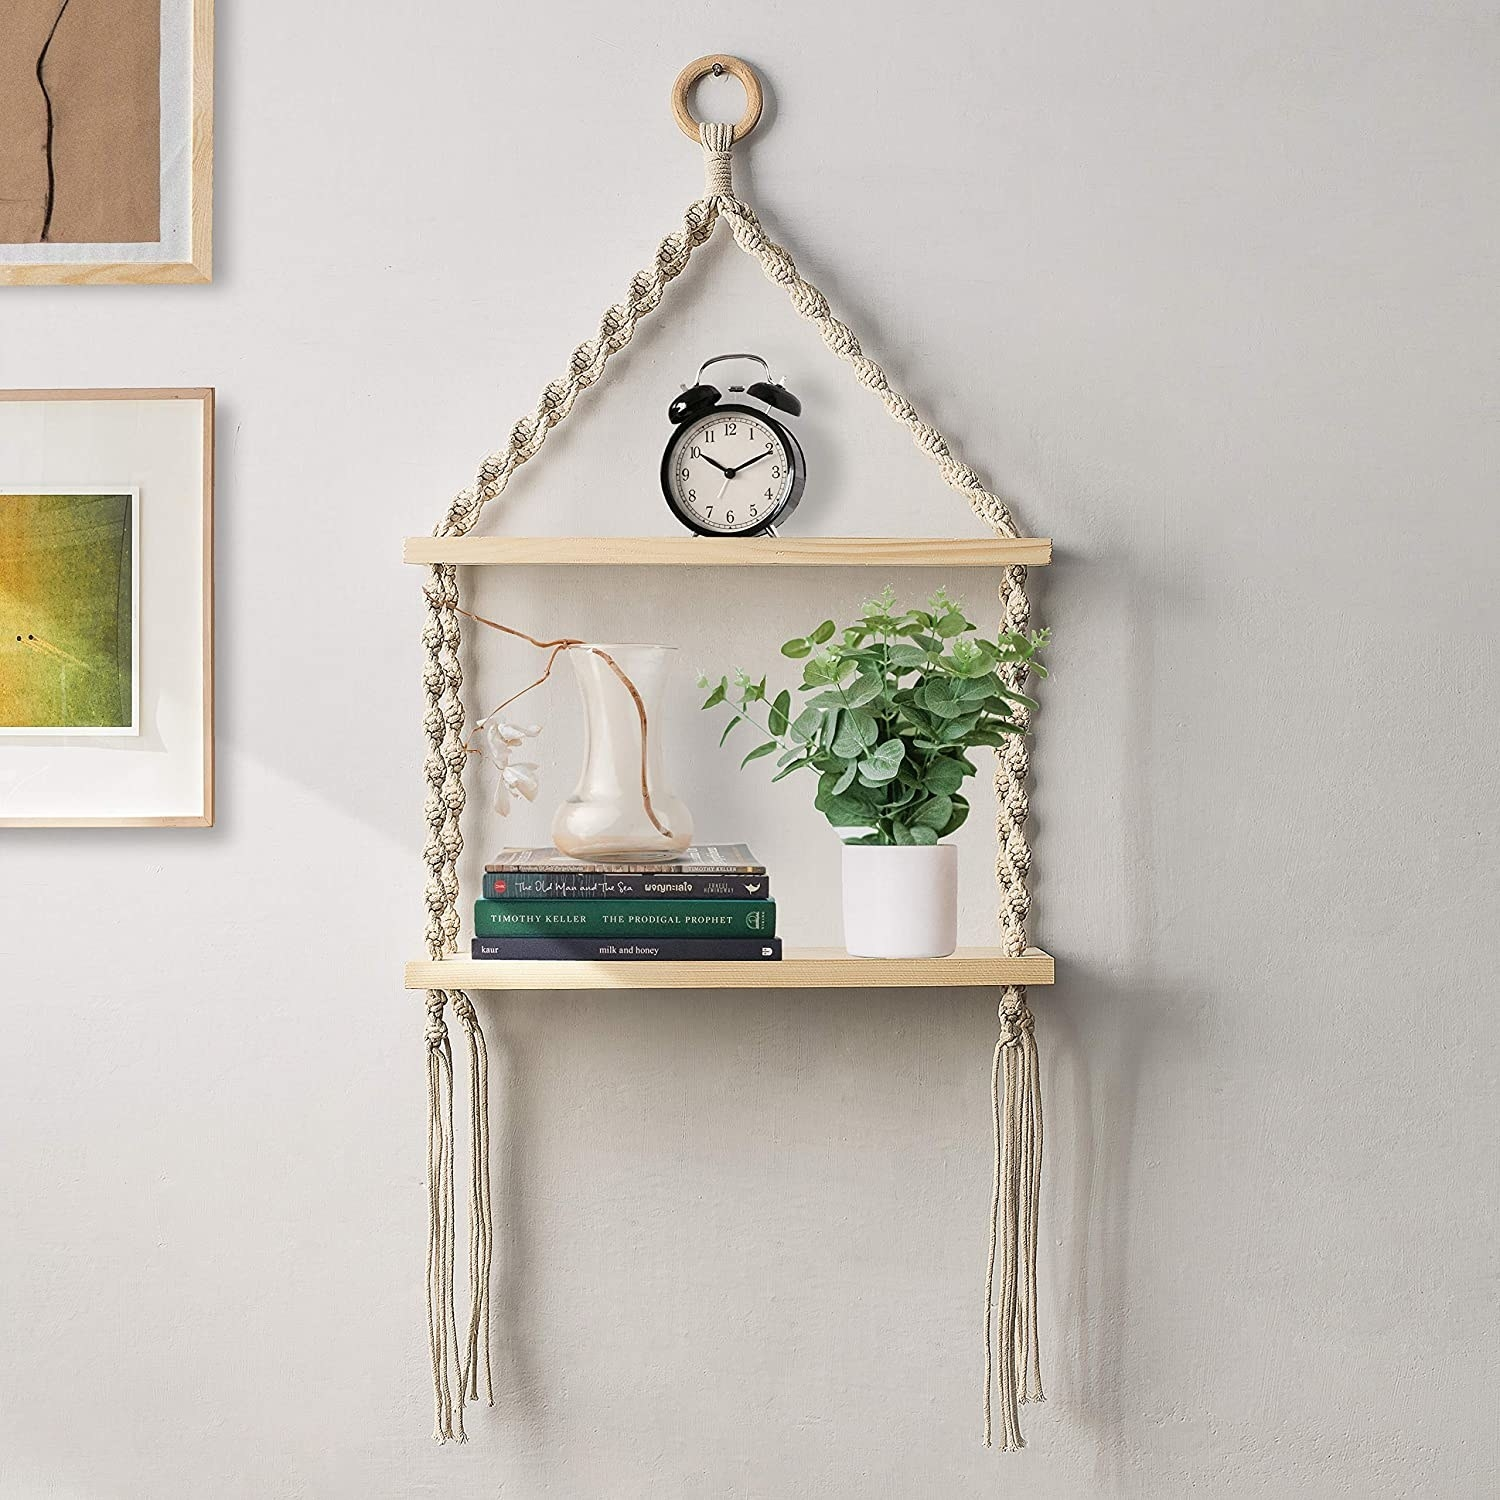 A white macrame hanging shelf with two tiers. It houses books and potted plants.